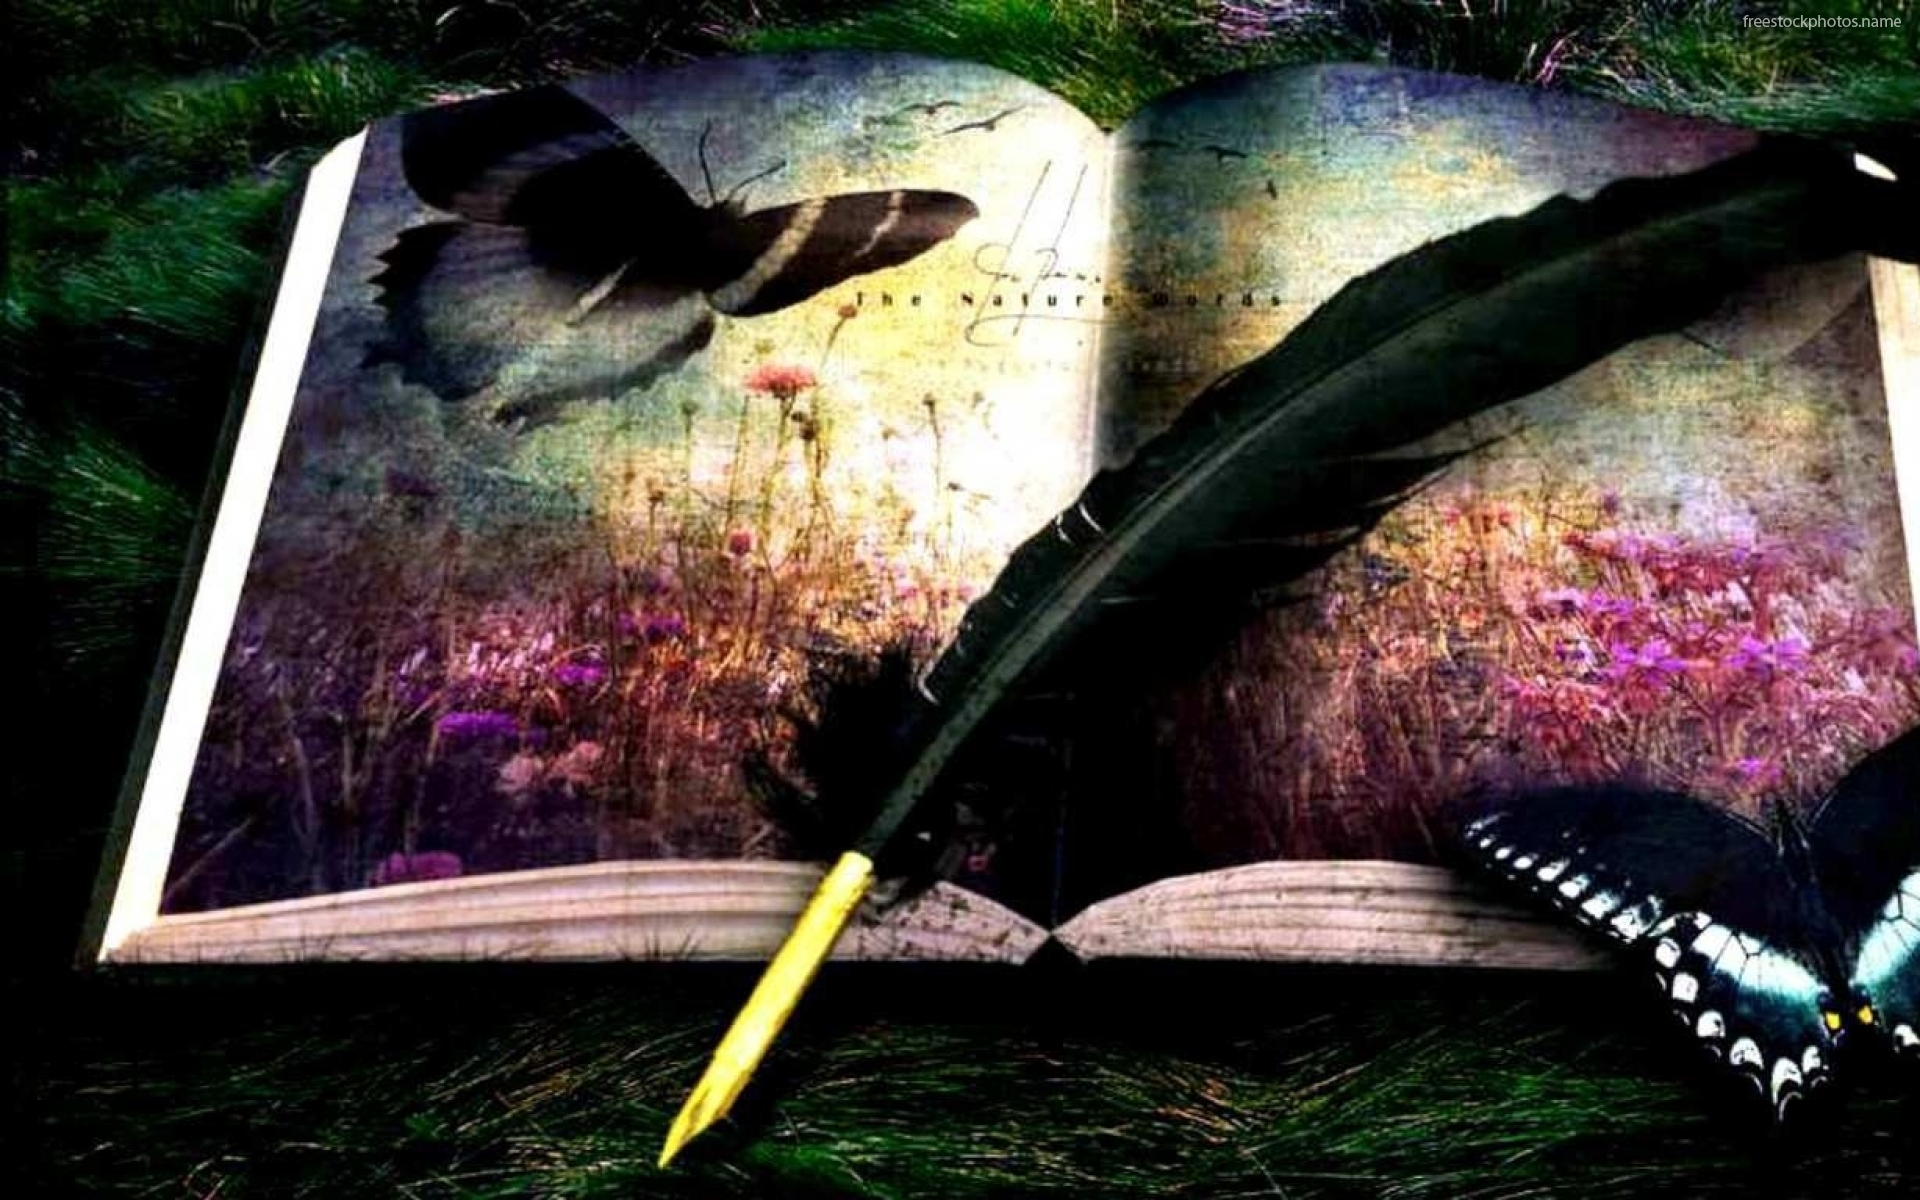 Download Stock Photos of painting of an open book images photography 1920x1200